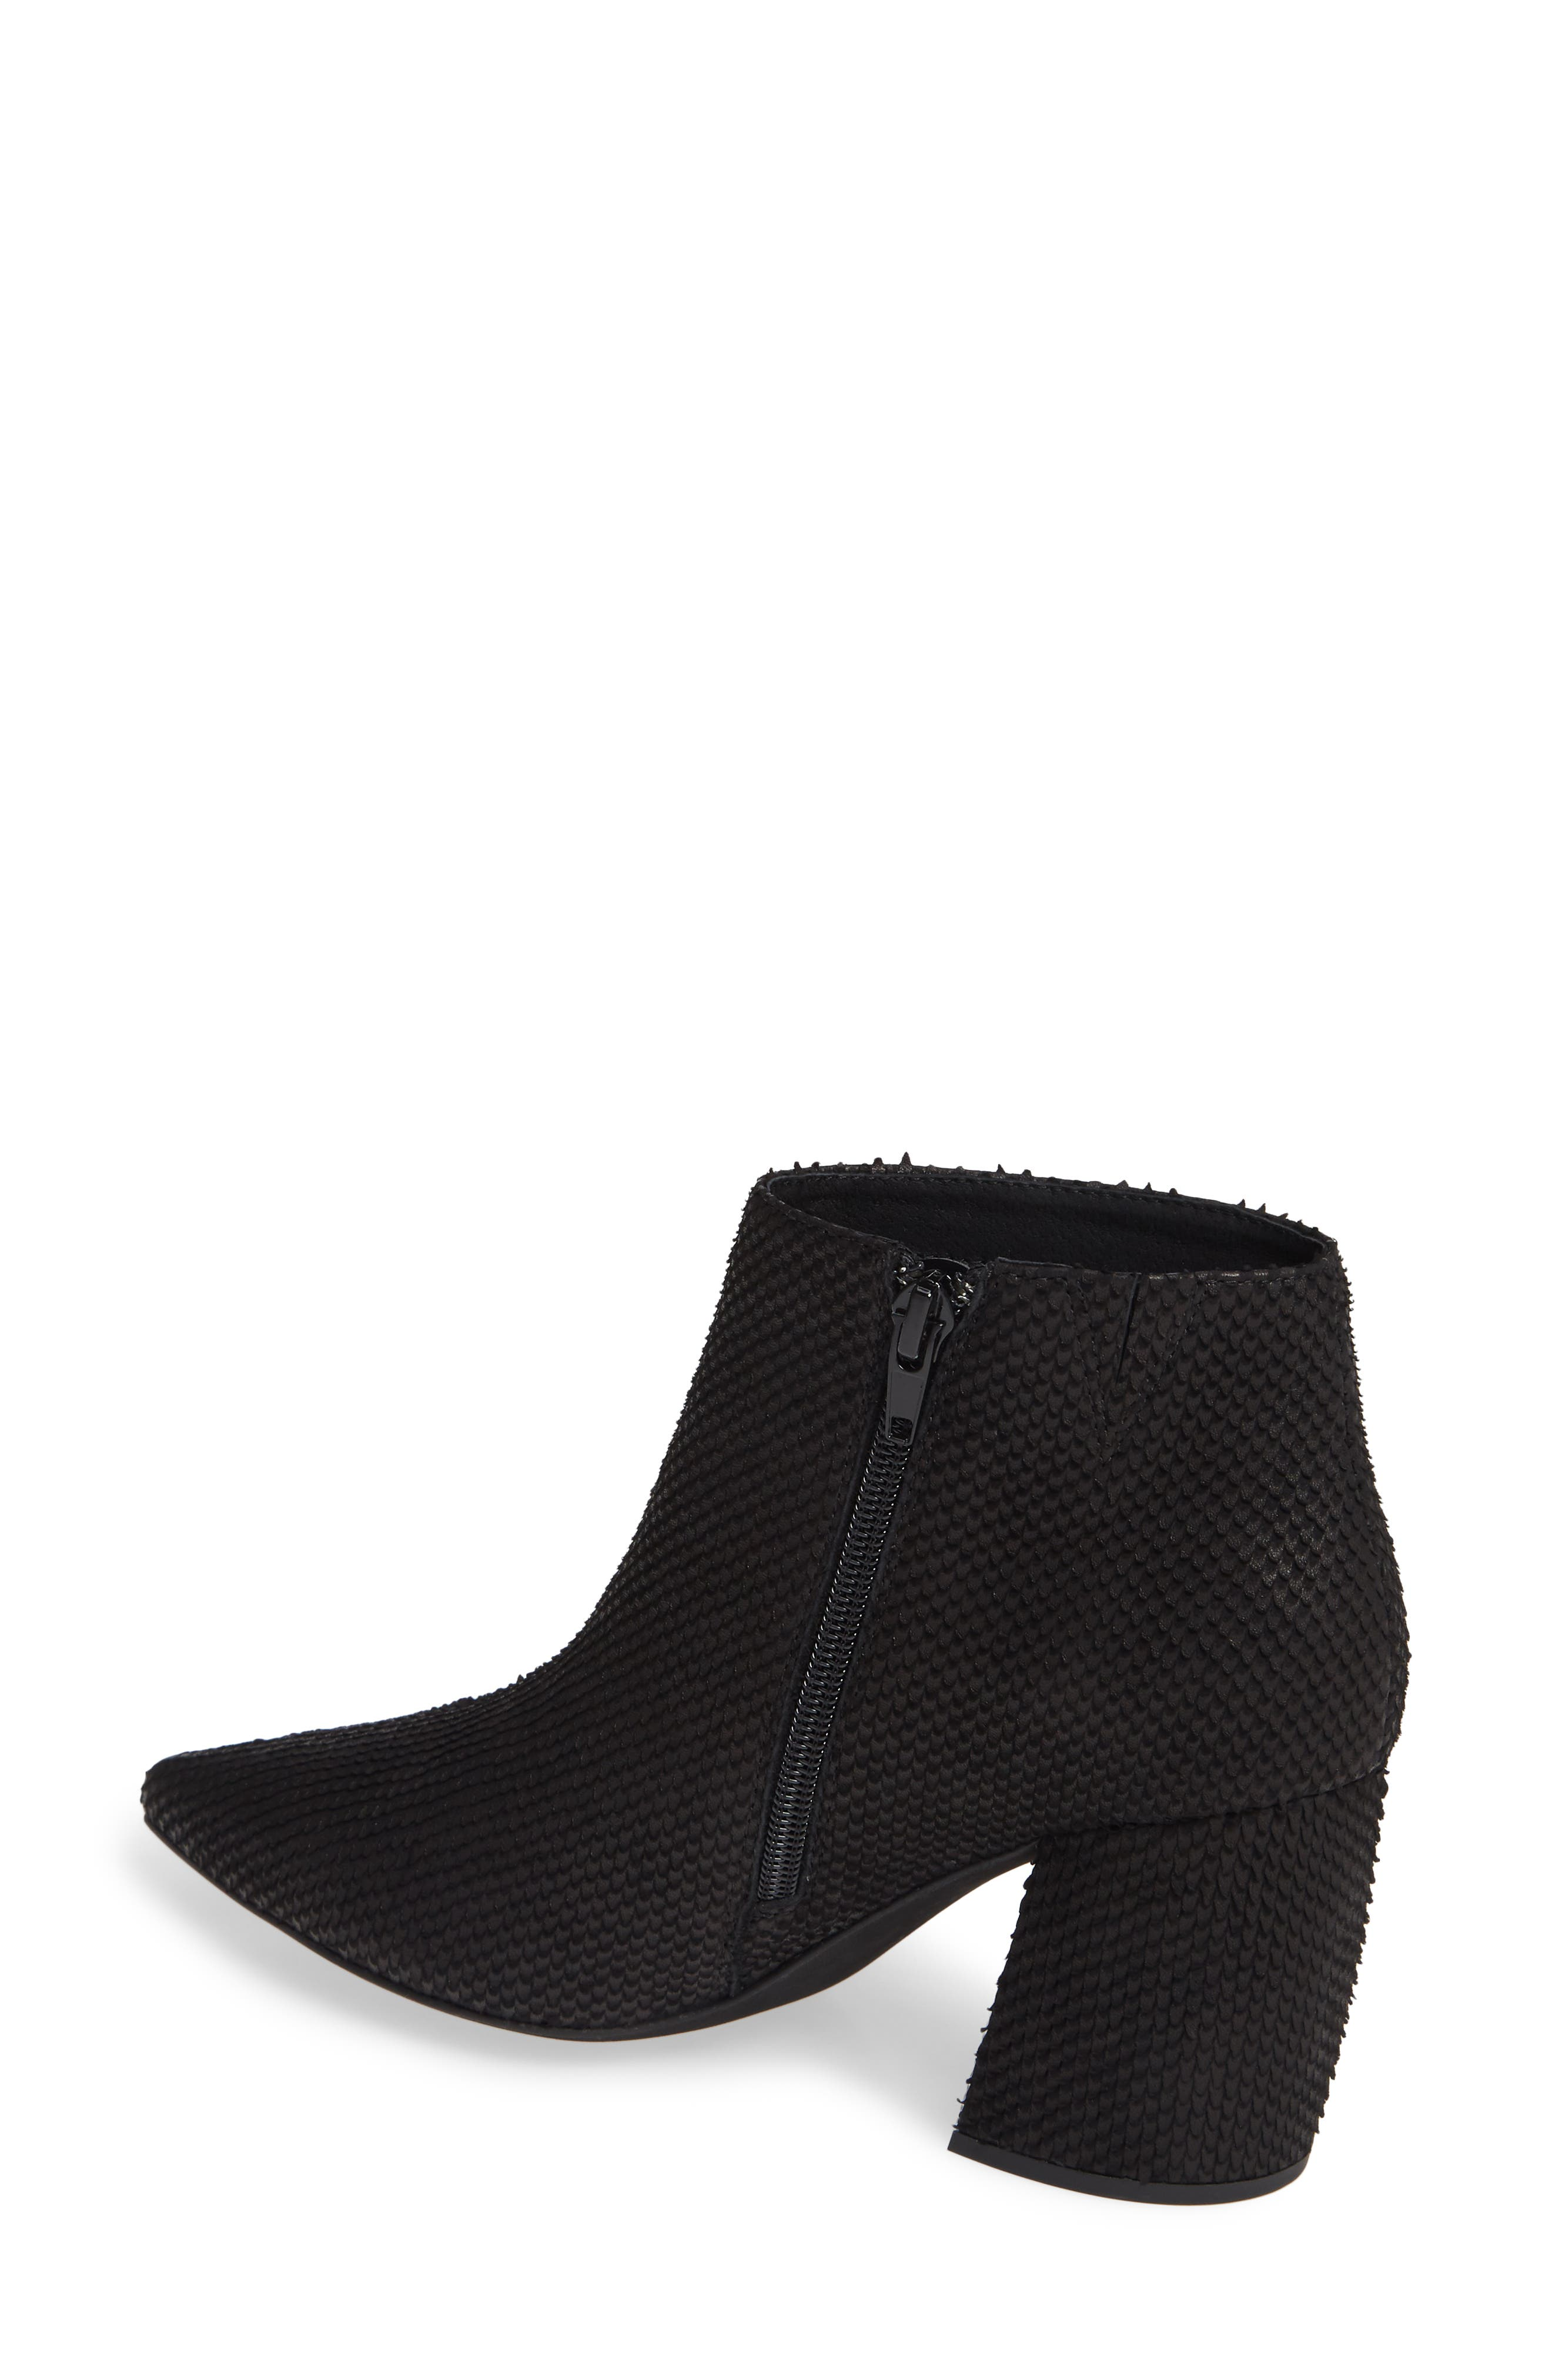 JEFFREY CAMPBELL, Total Ankle Bootie, Alternate thumbnail 2, color, BLACK SCALES